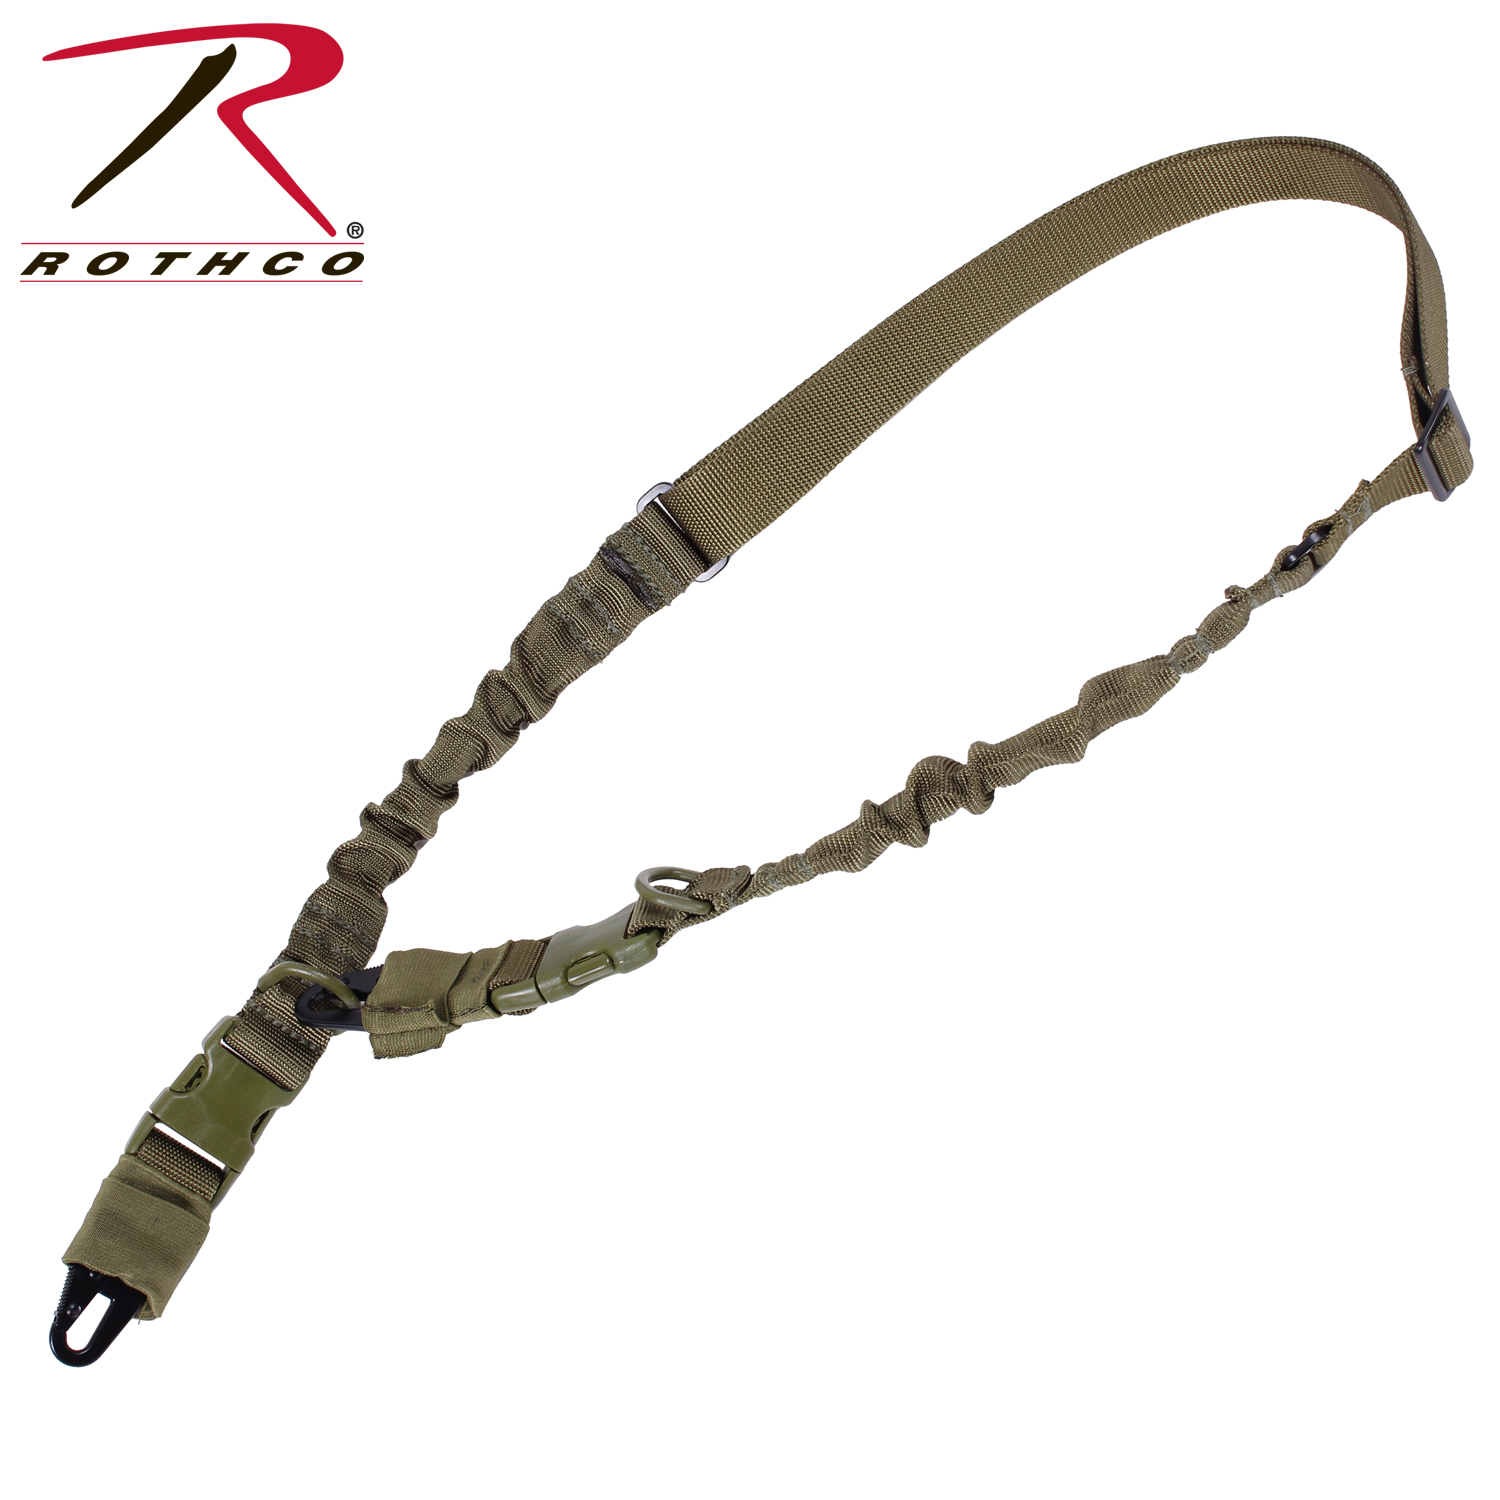 Rothco single point sling Rothco Single Point Sling - Coyote Brown